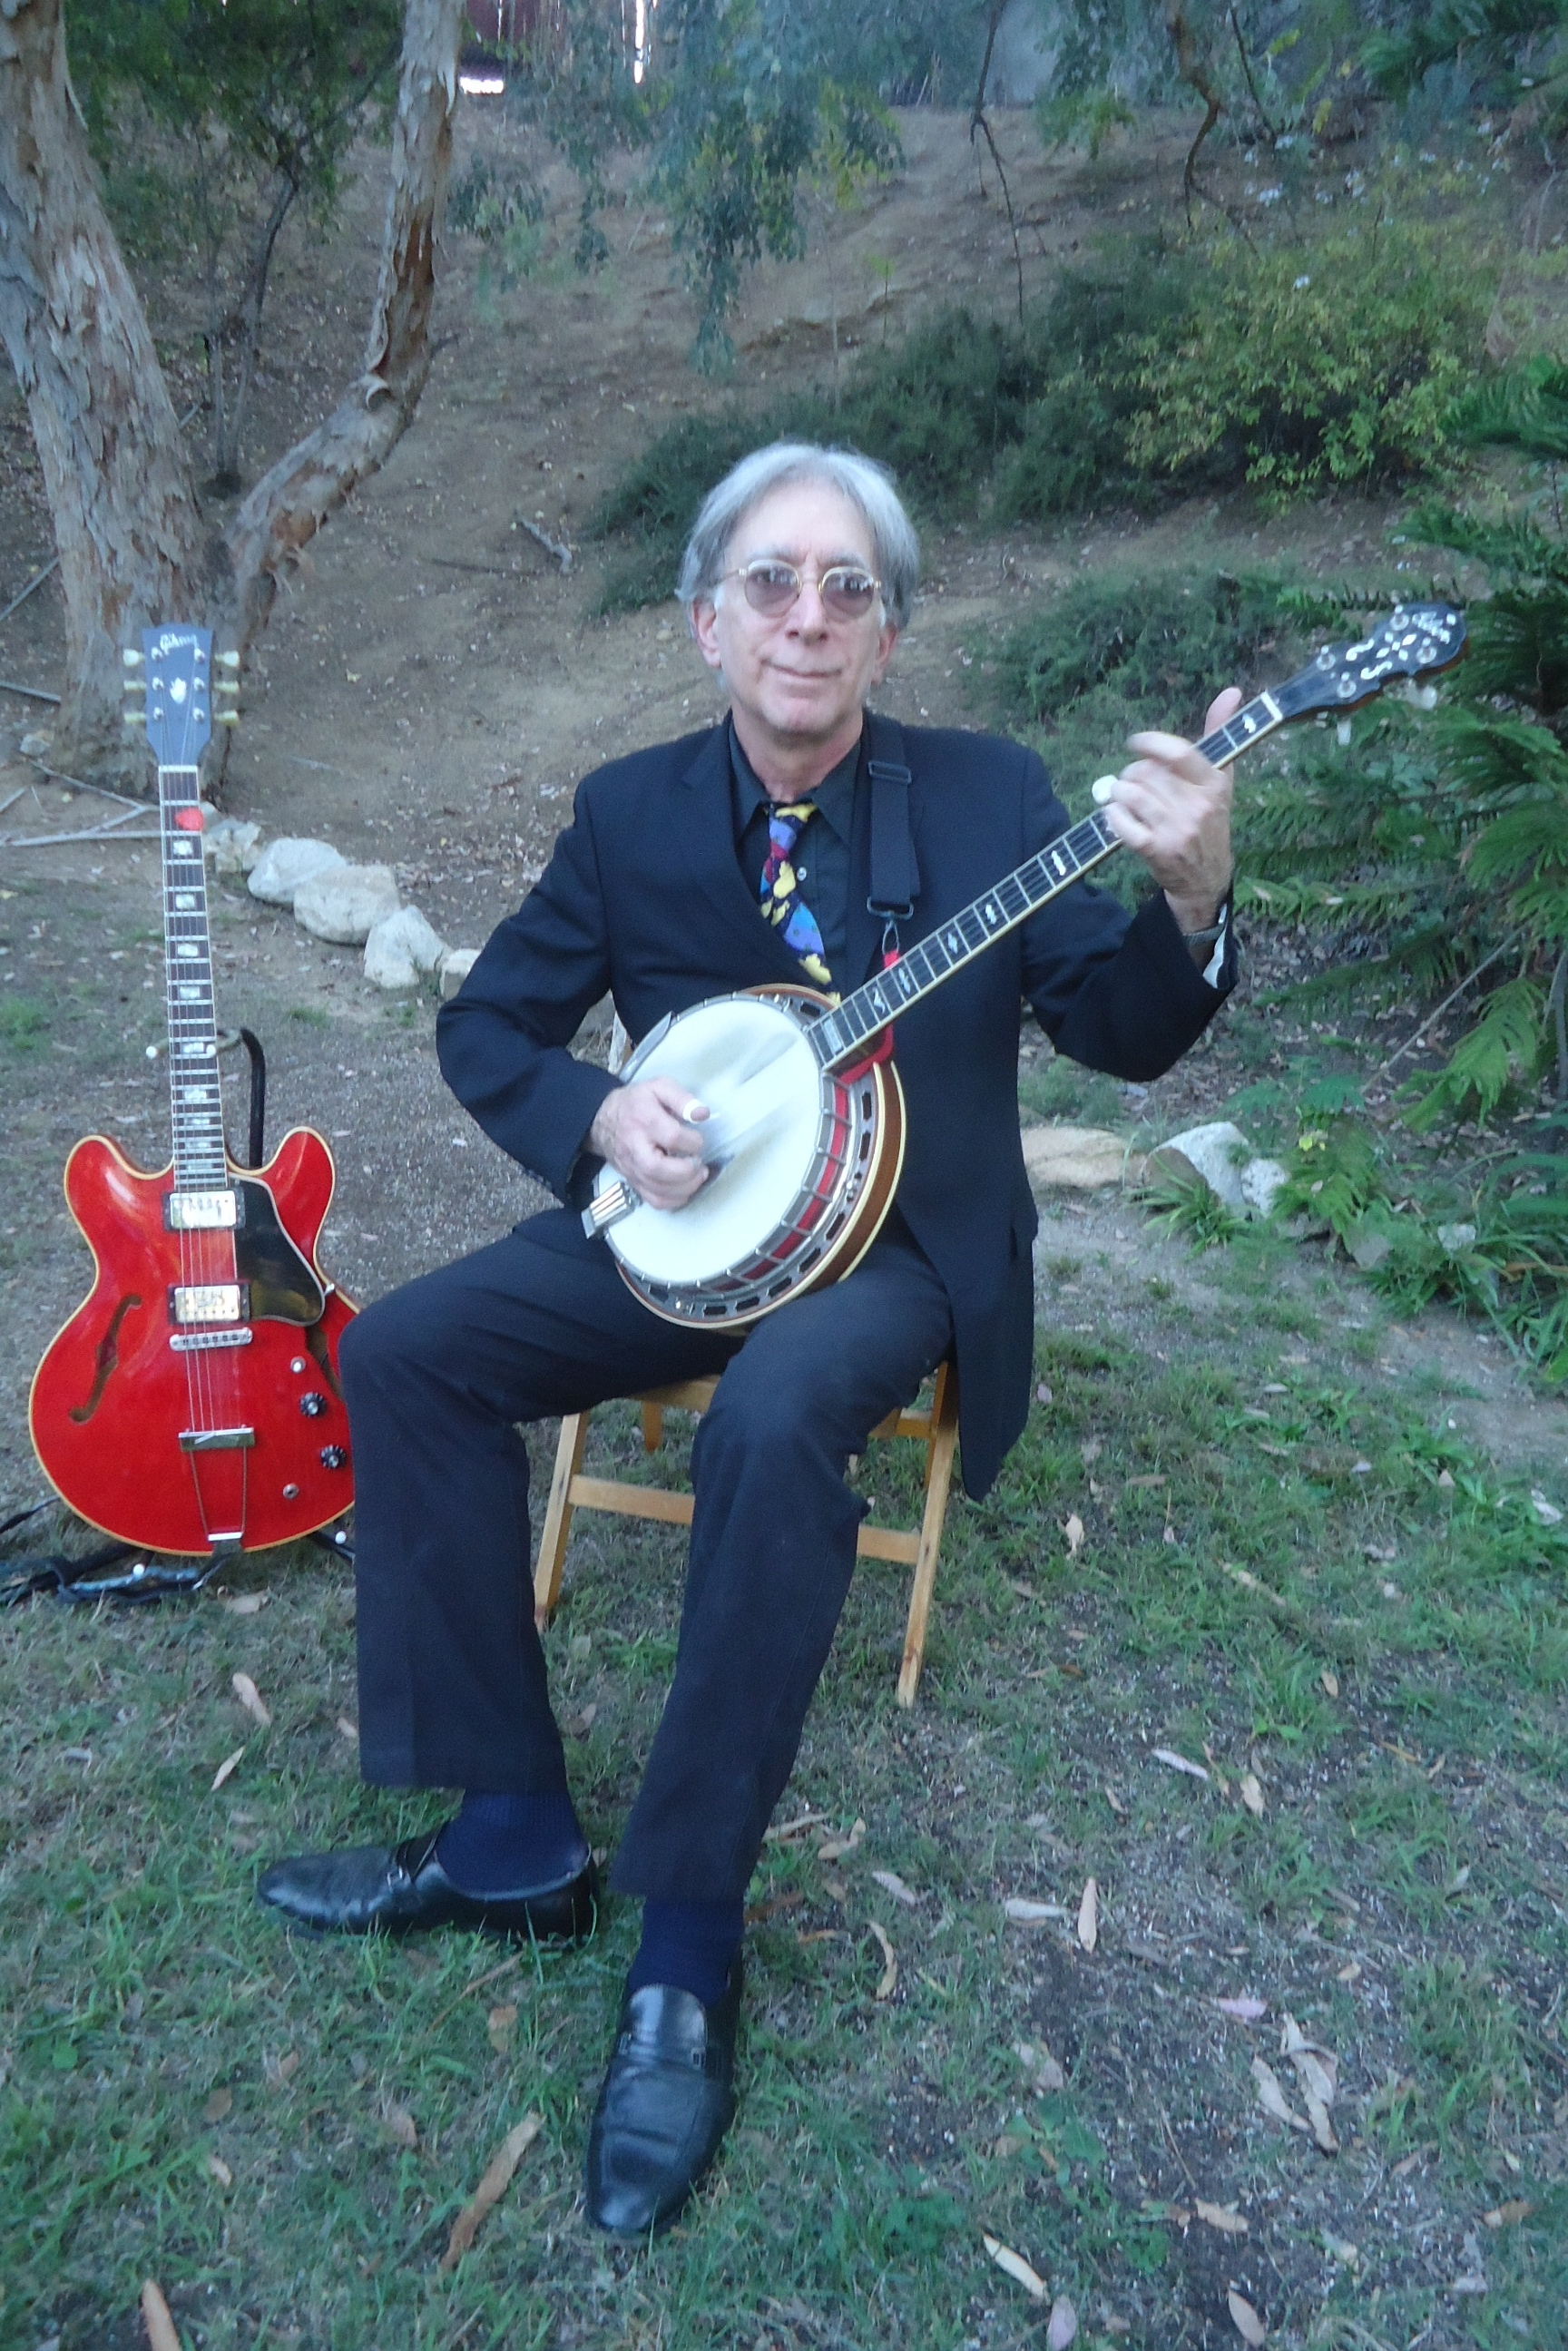 Bob Cesarone - Guitar, banjo and harmonica